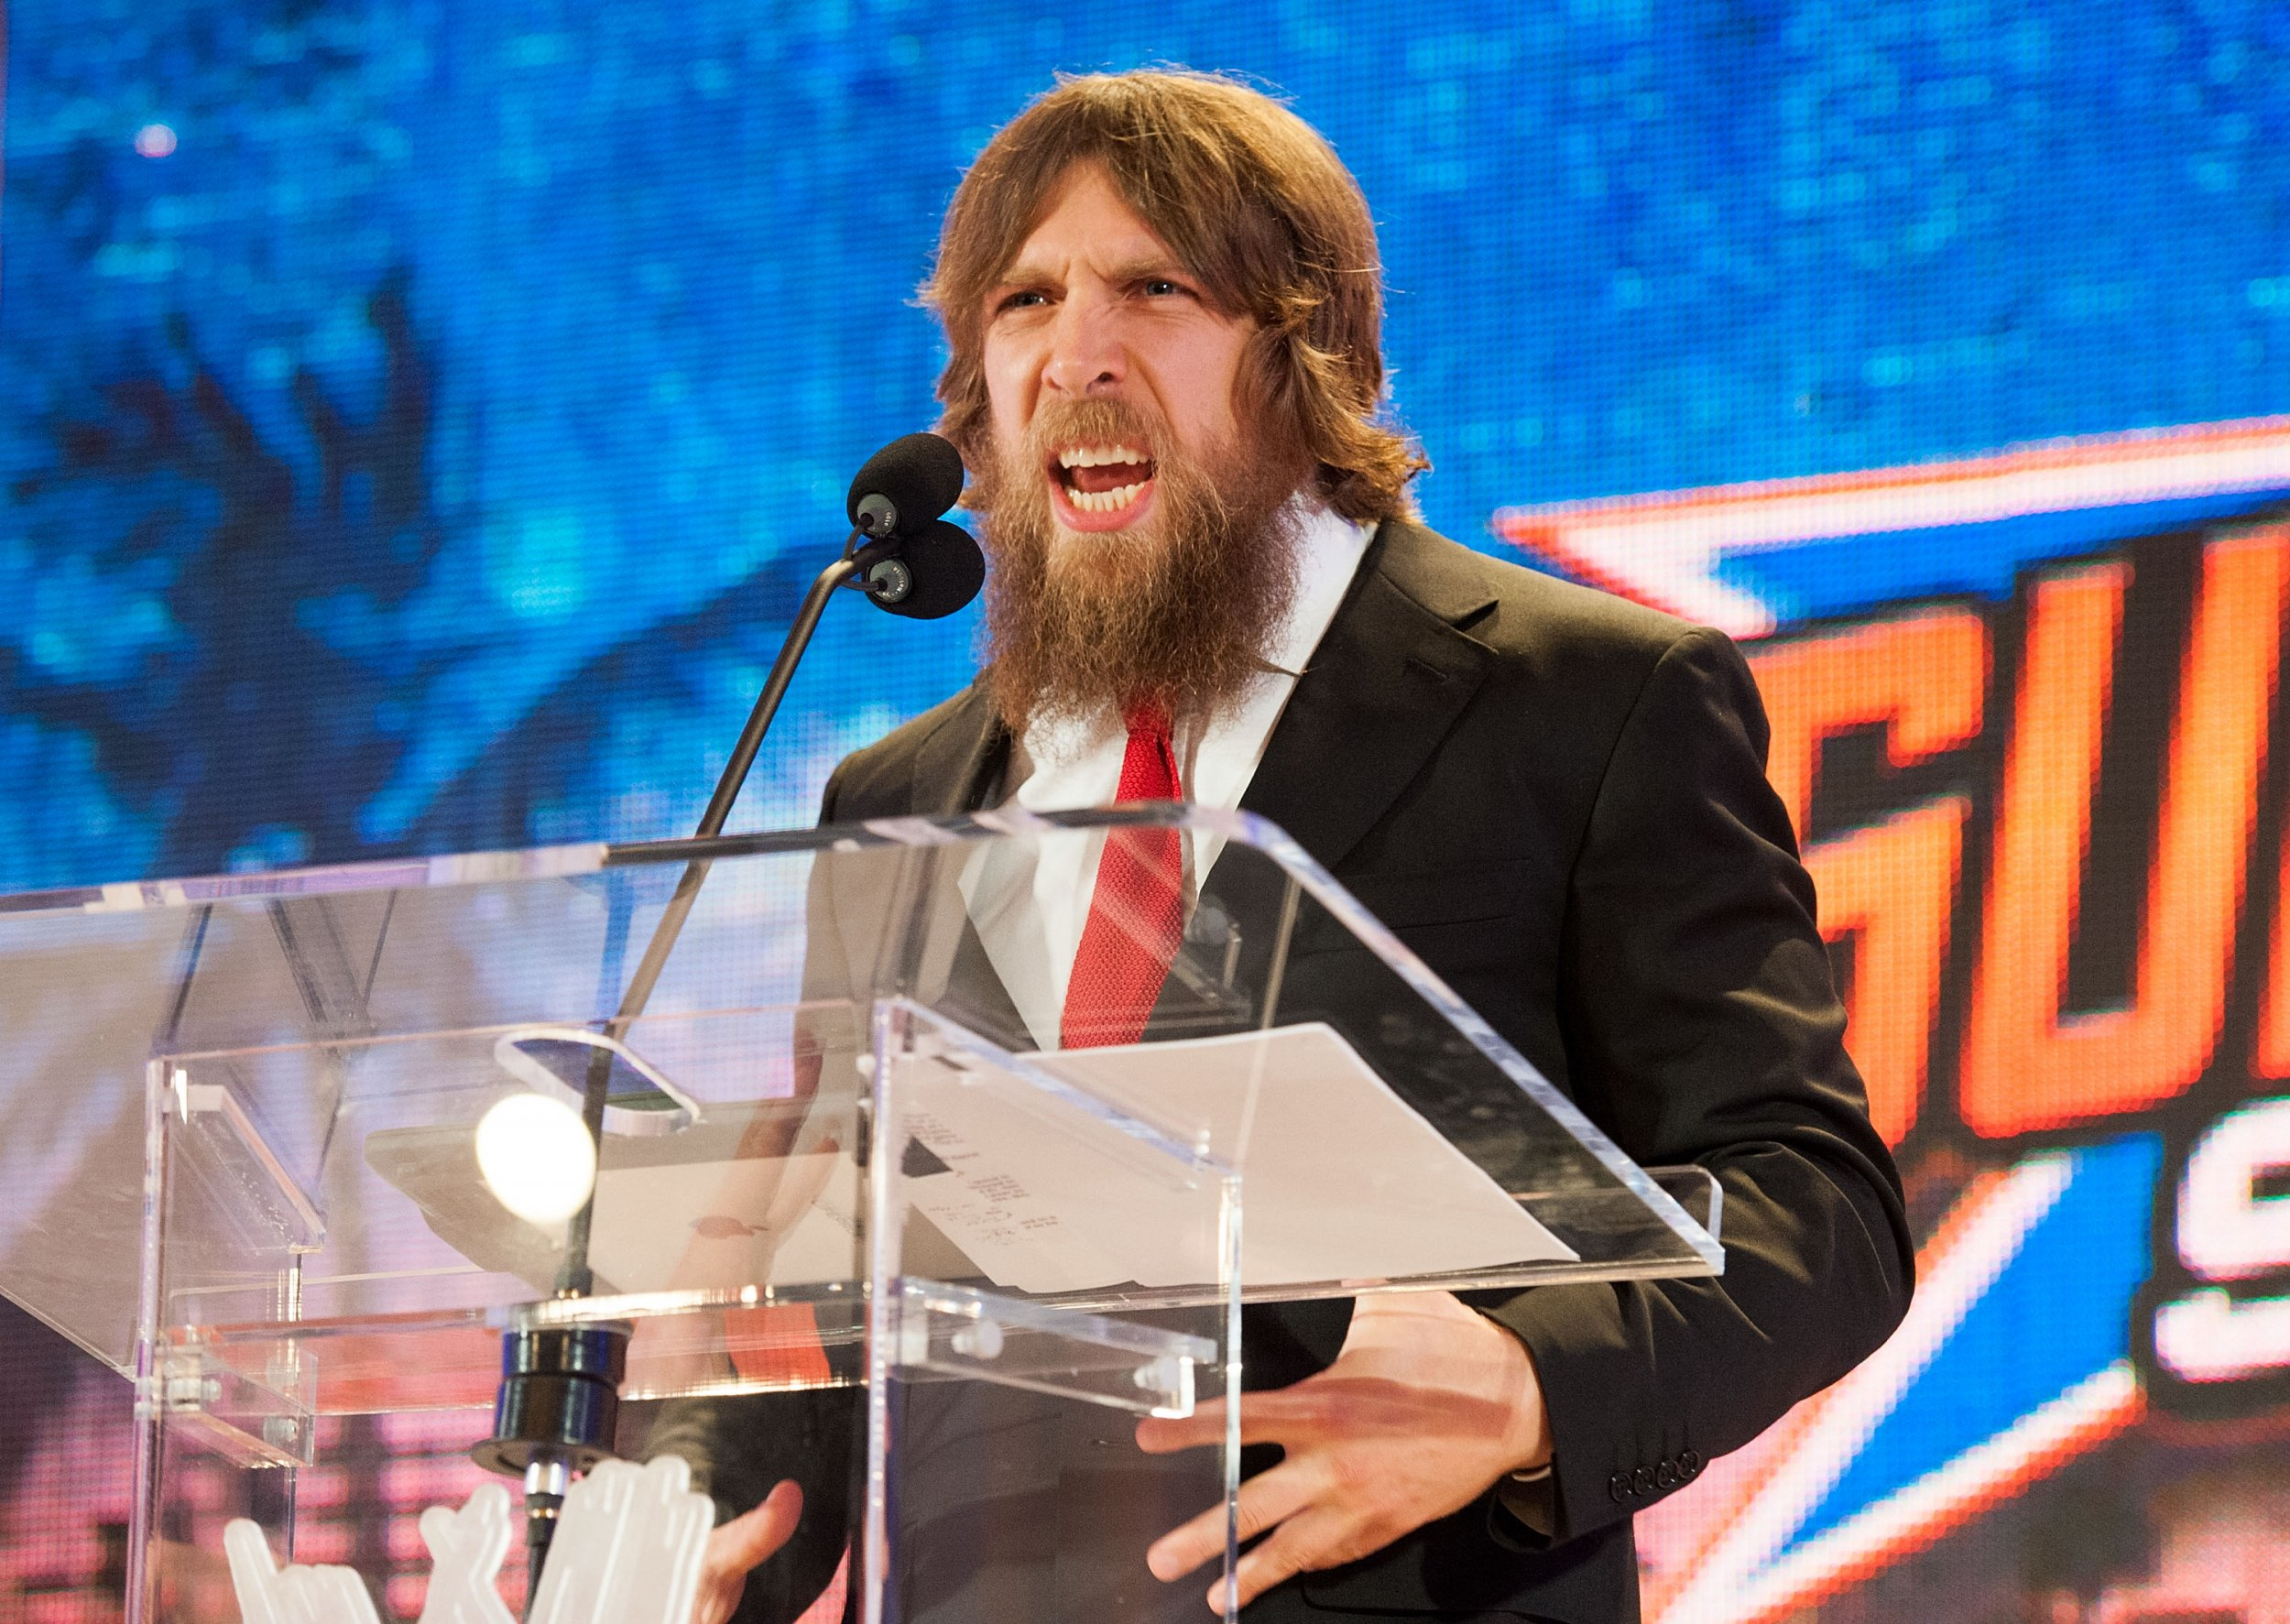 Daniel Bryan was forced to retire from WWE due to multiple concussions.